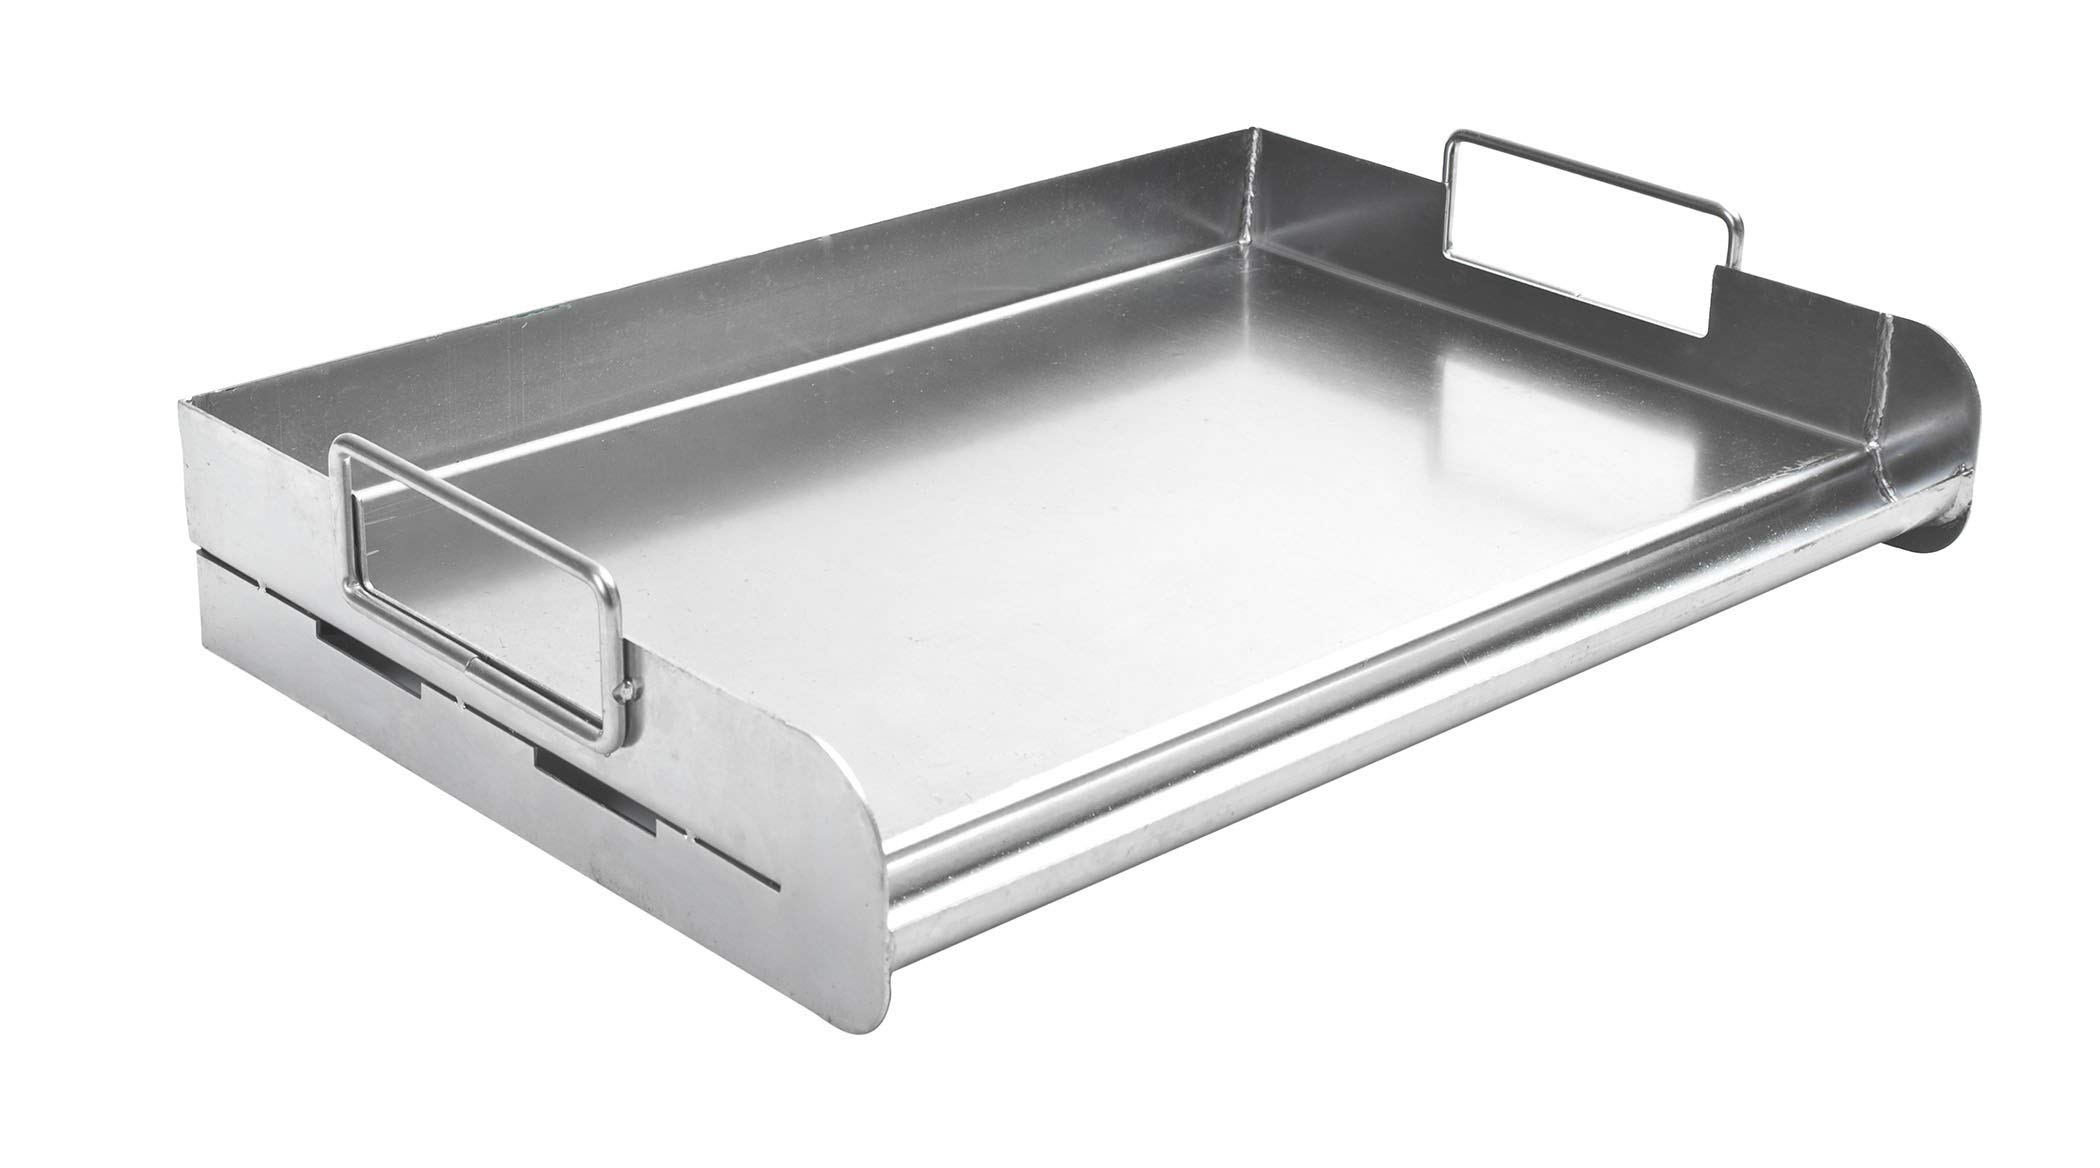 Charcoal Companion CC3500 Stainless Steel Pro Grill Griddle (Renewed)